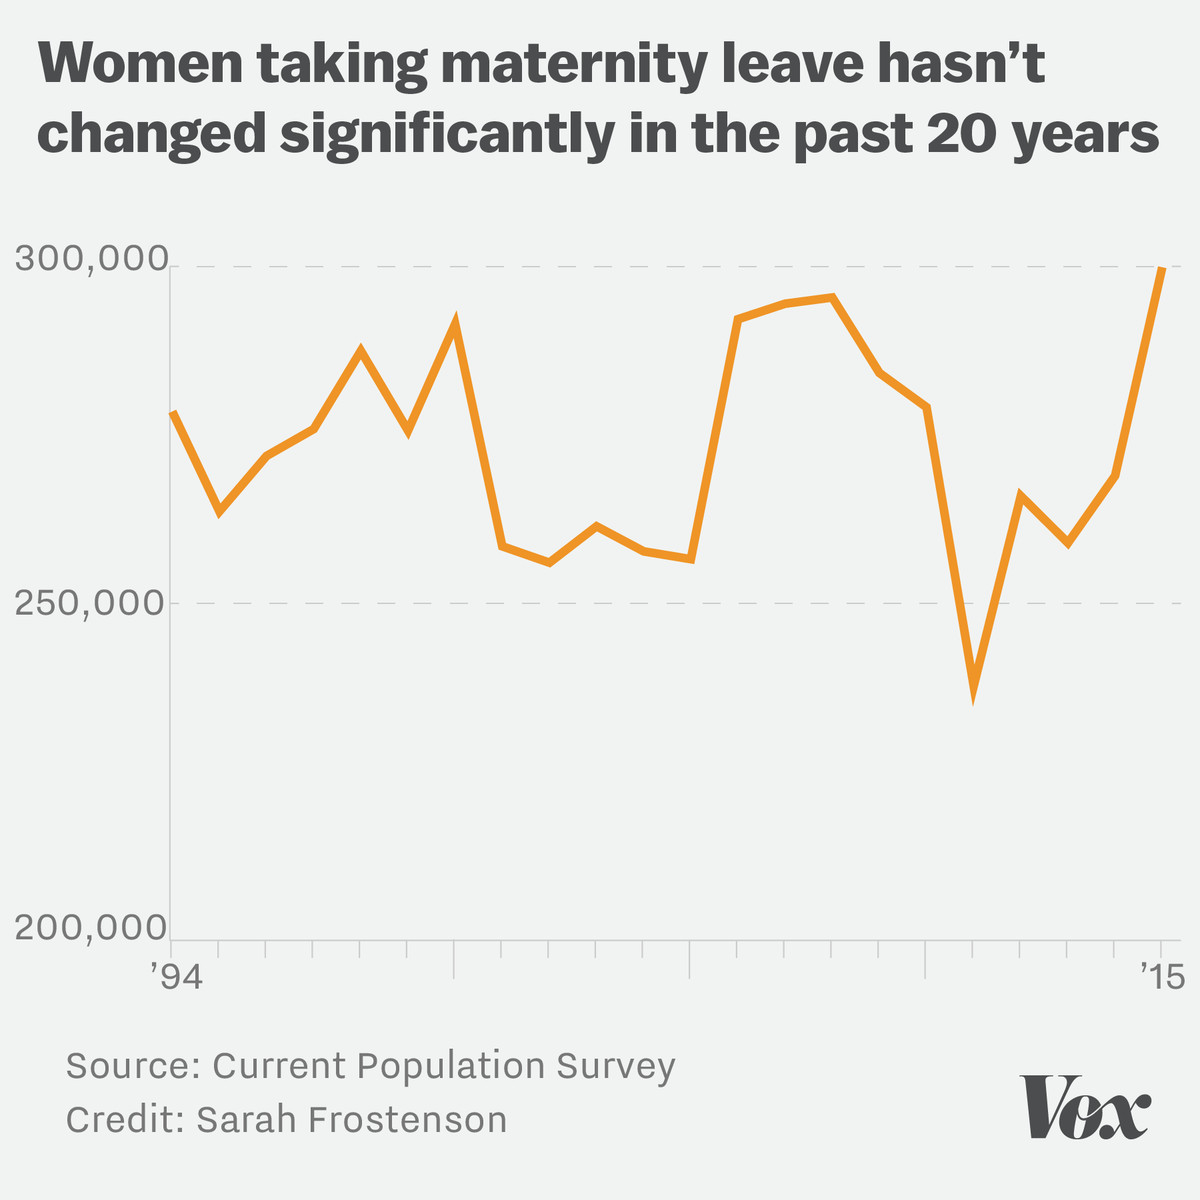 Chart showing that the number of women taking maternity leave hasn't changed in the last 20 years